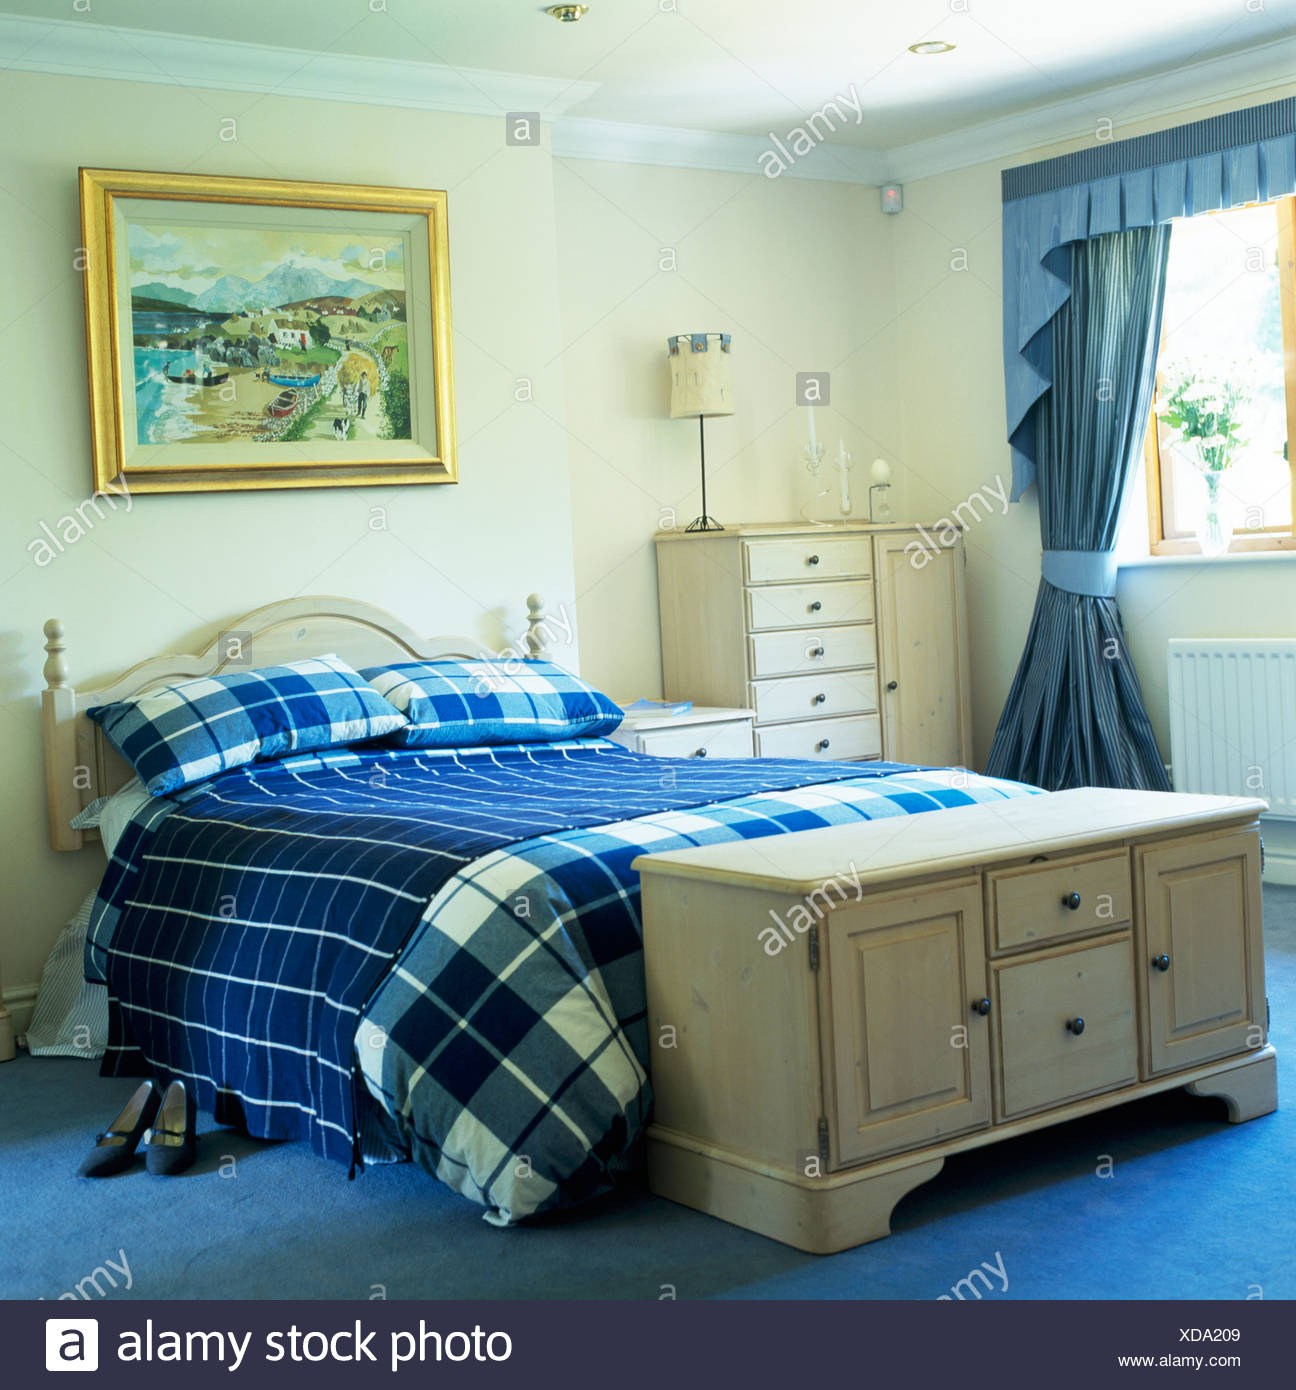 Pale wood chest below bed with blue checked bed-cover and ...